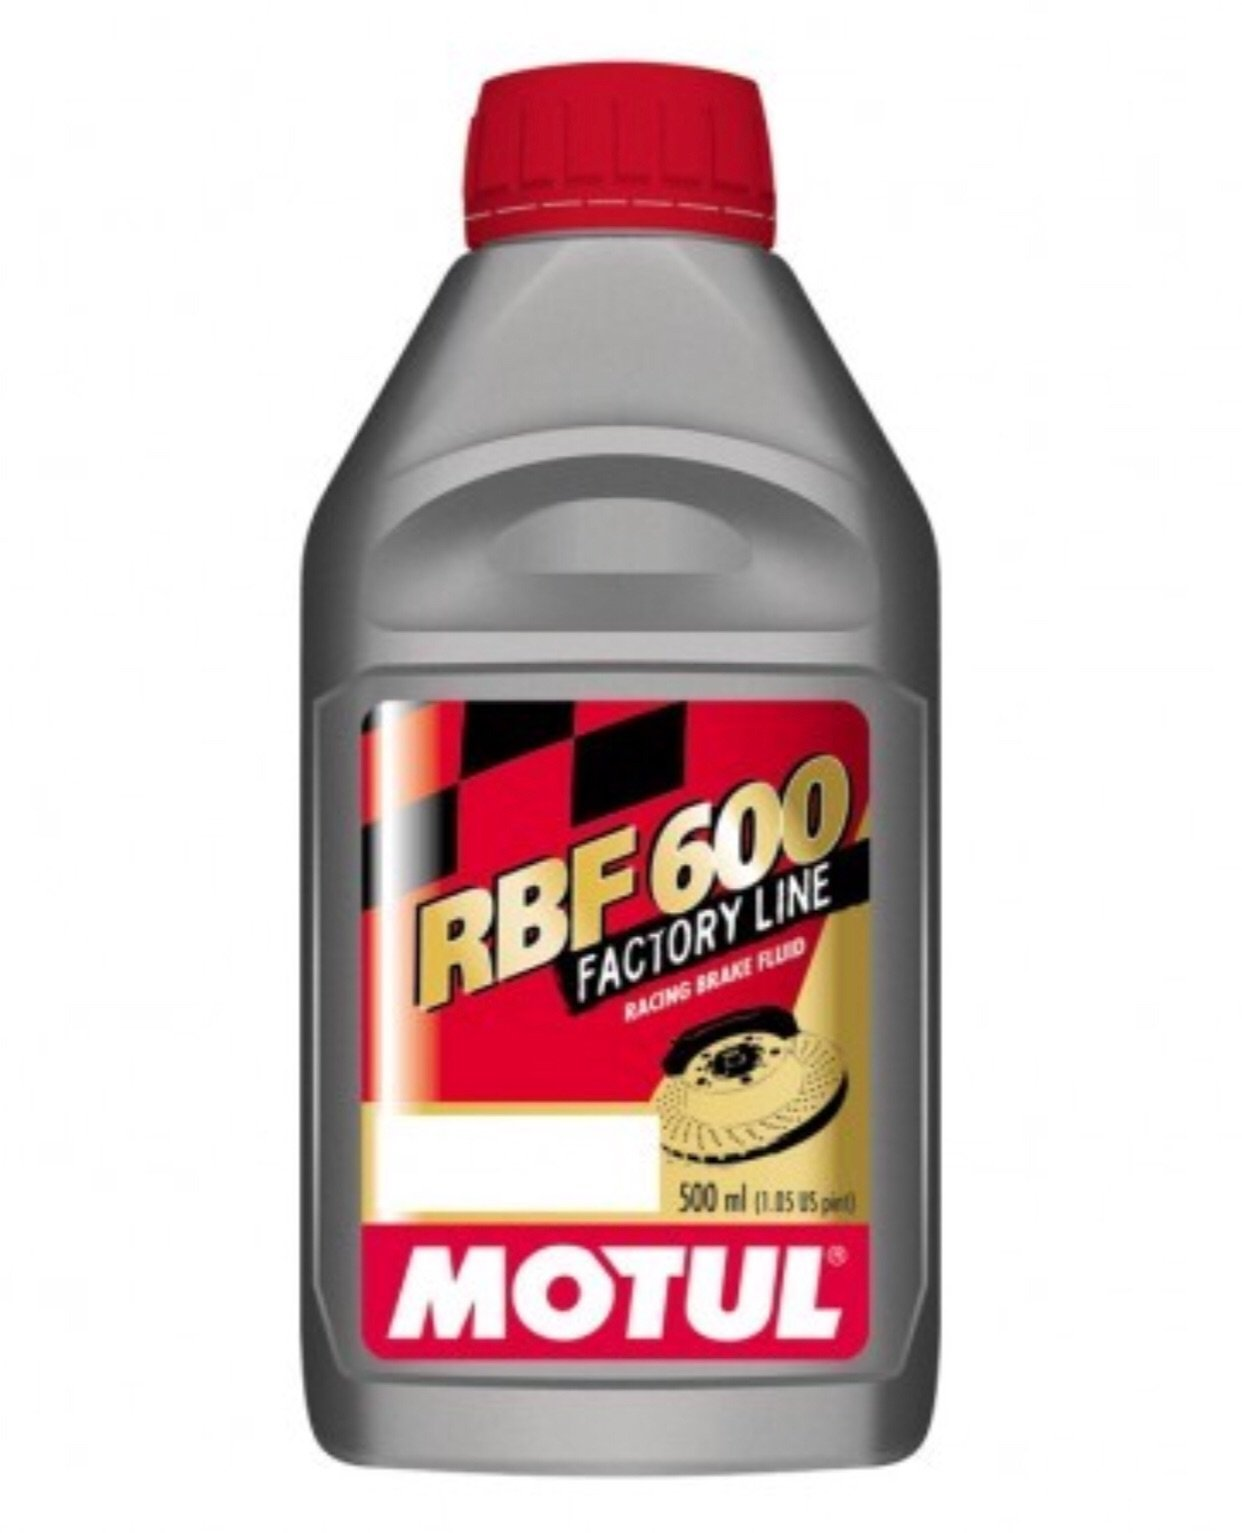 RBF600 Factory Line, Brake Fluid, Motul - Averys Motorcycles